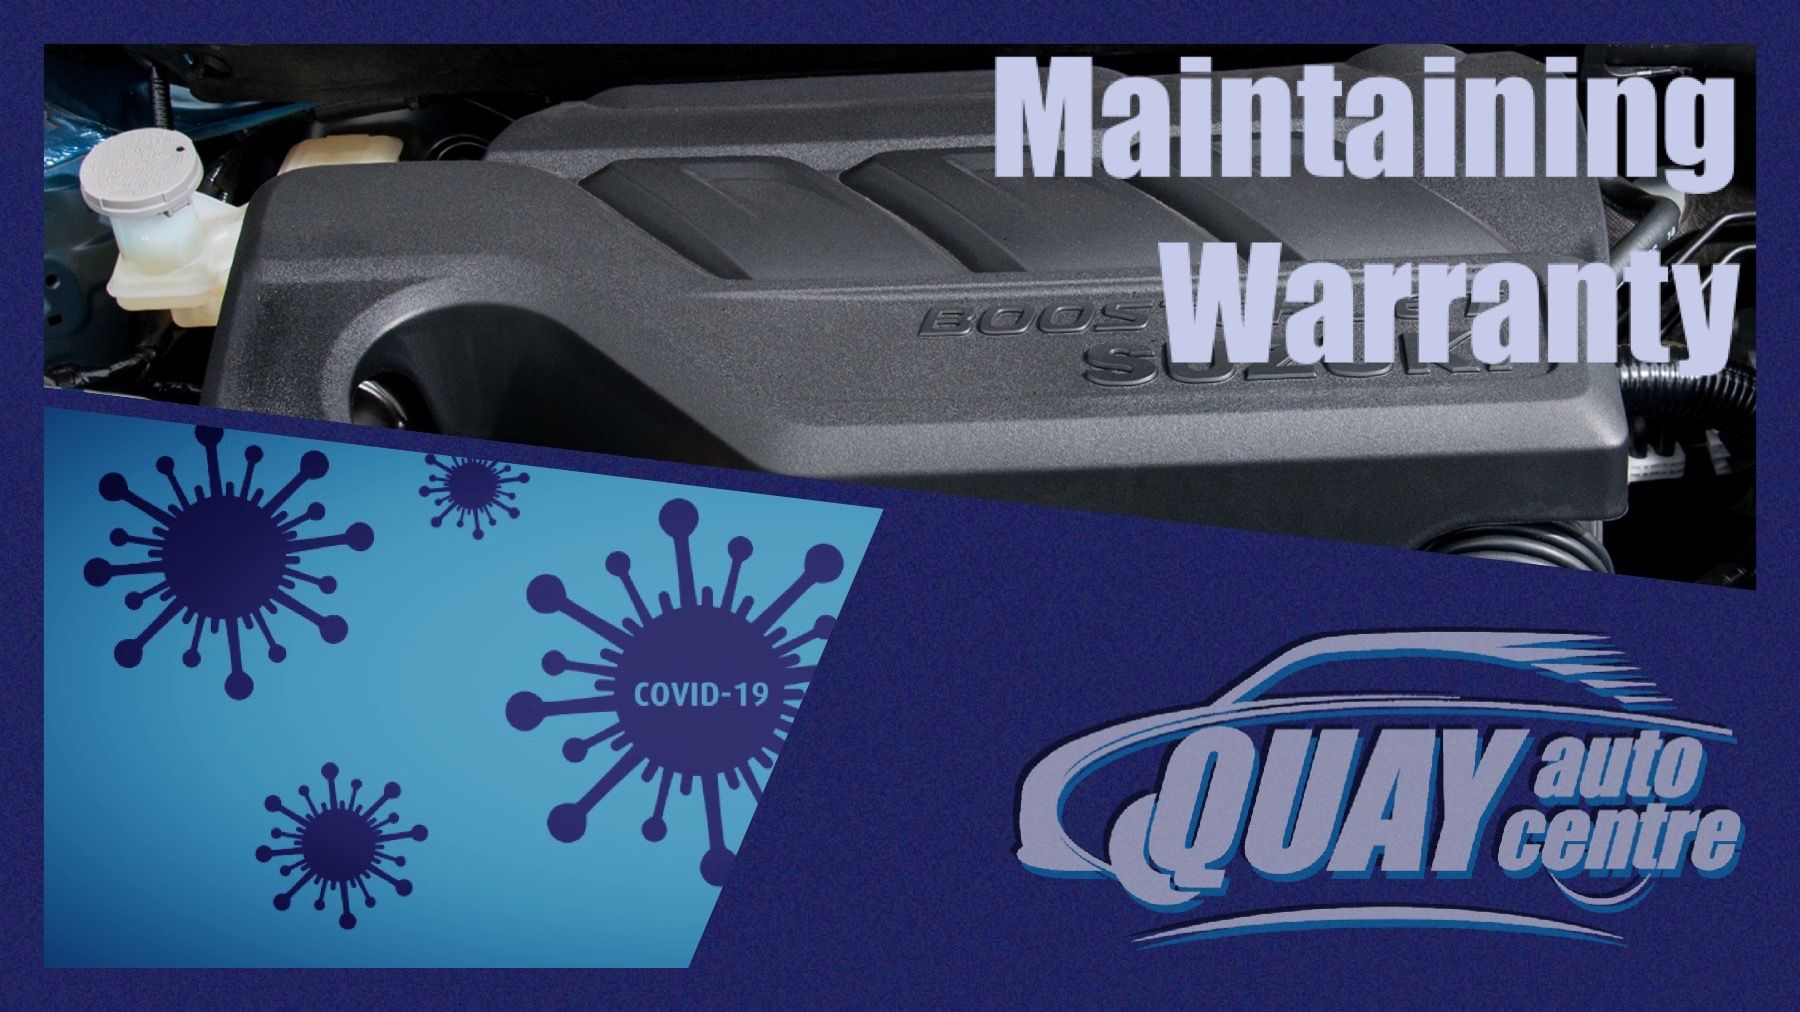 Maintaining your manufacturer Warranty during COVID-19